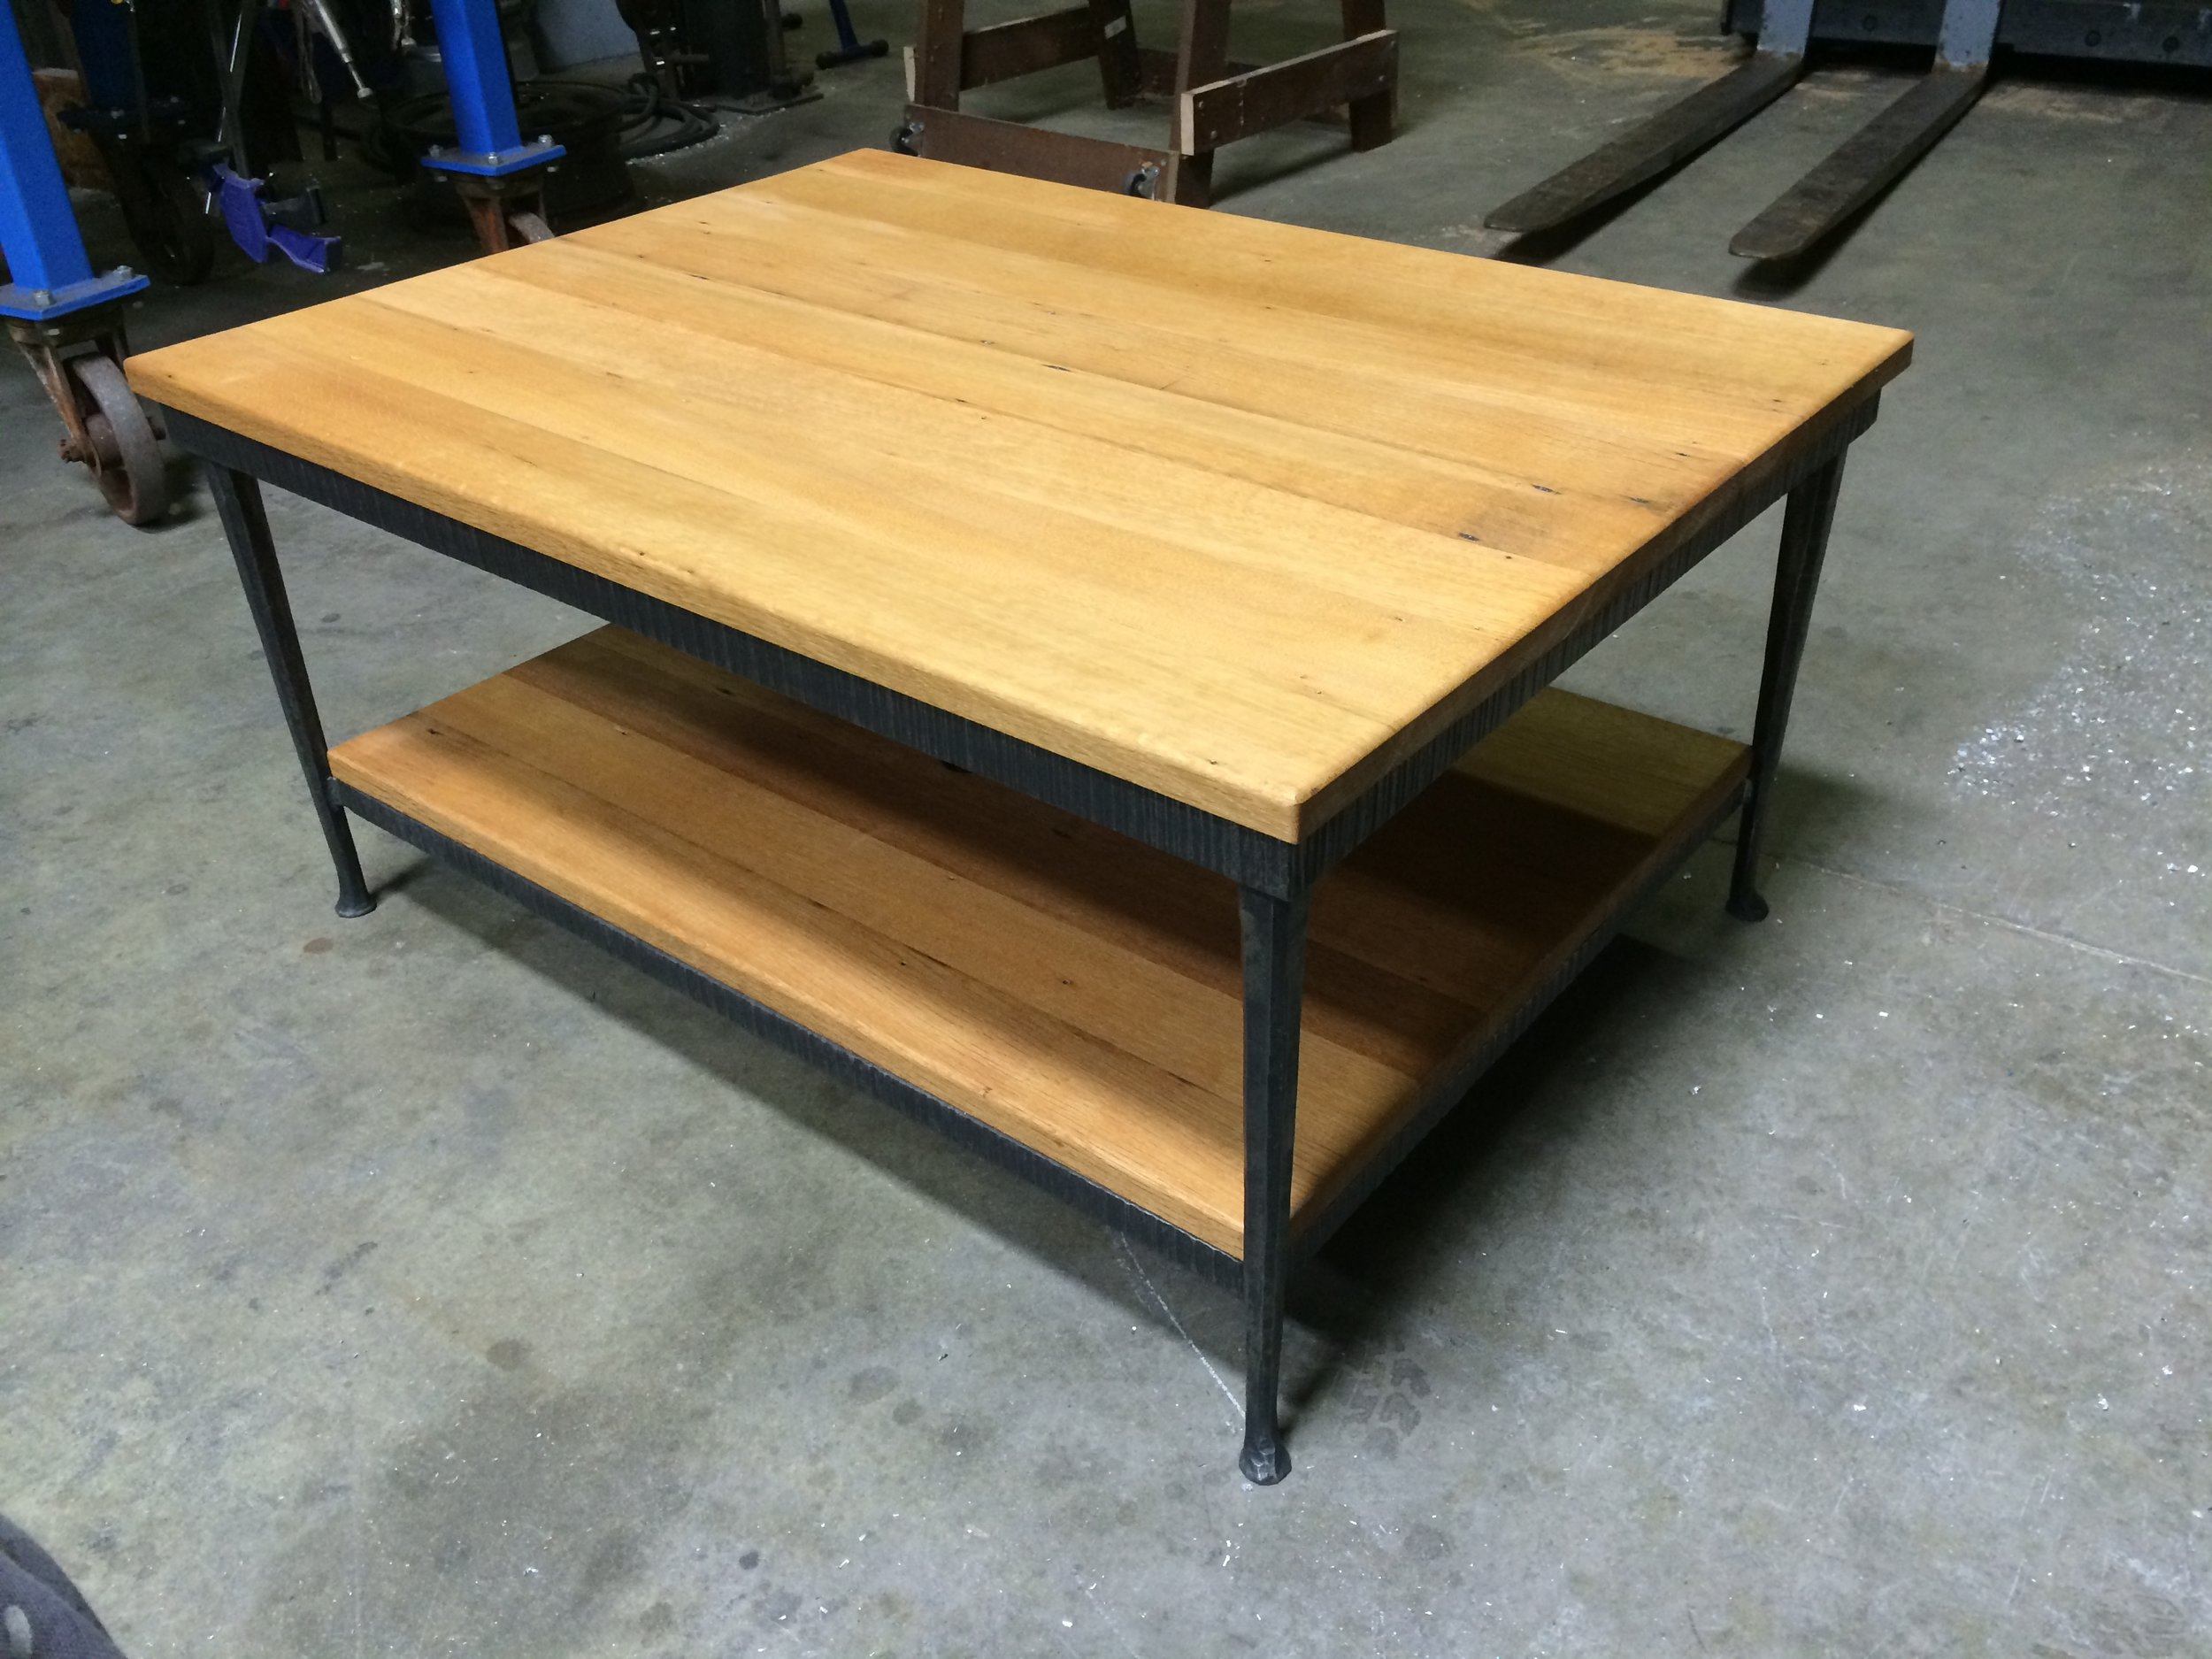 Steel Table Frame with Reclaimed Oak Top